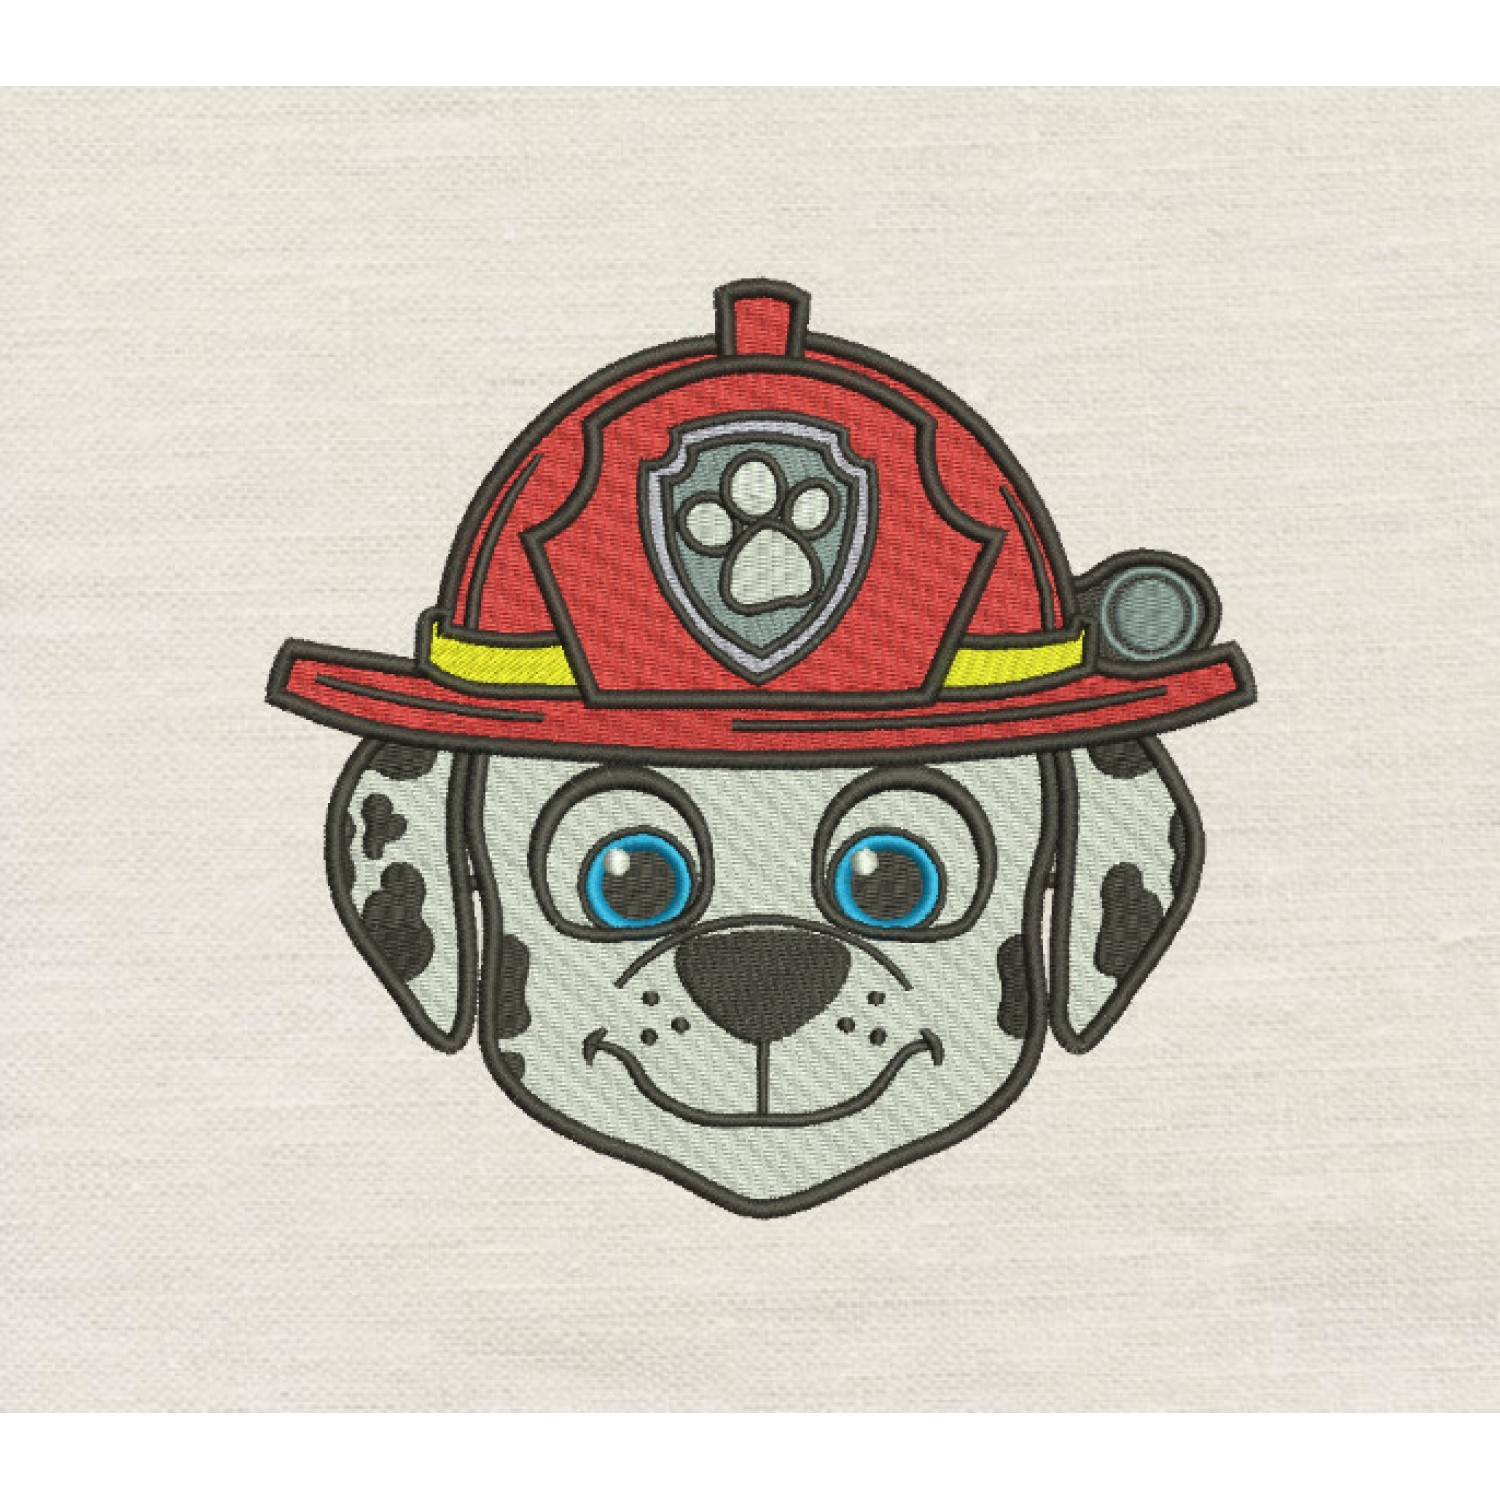 Marshall face Paw Patrol Embroidery